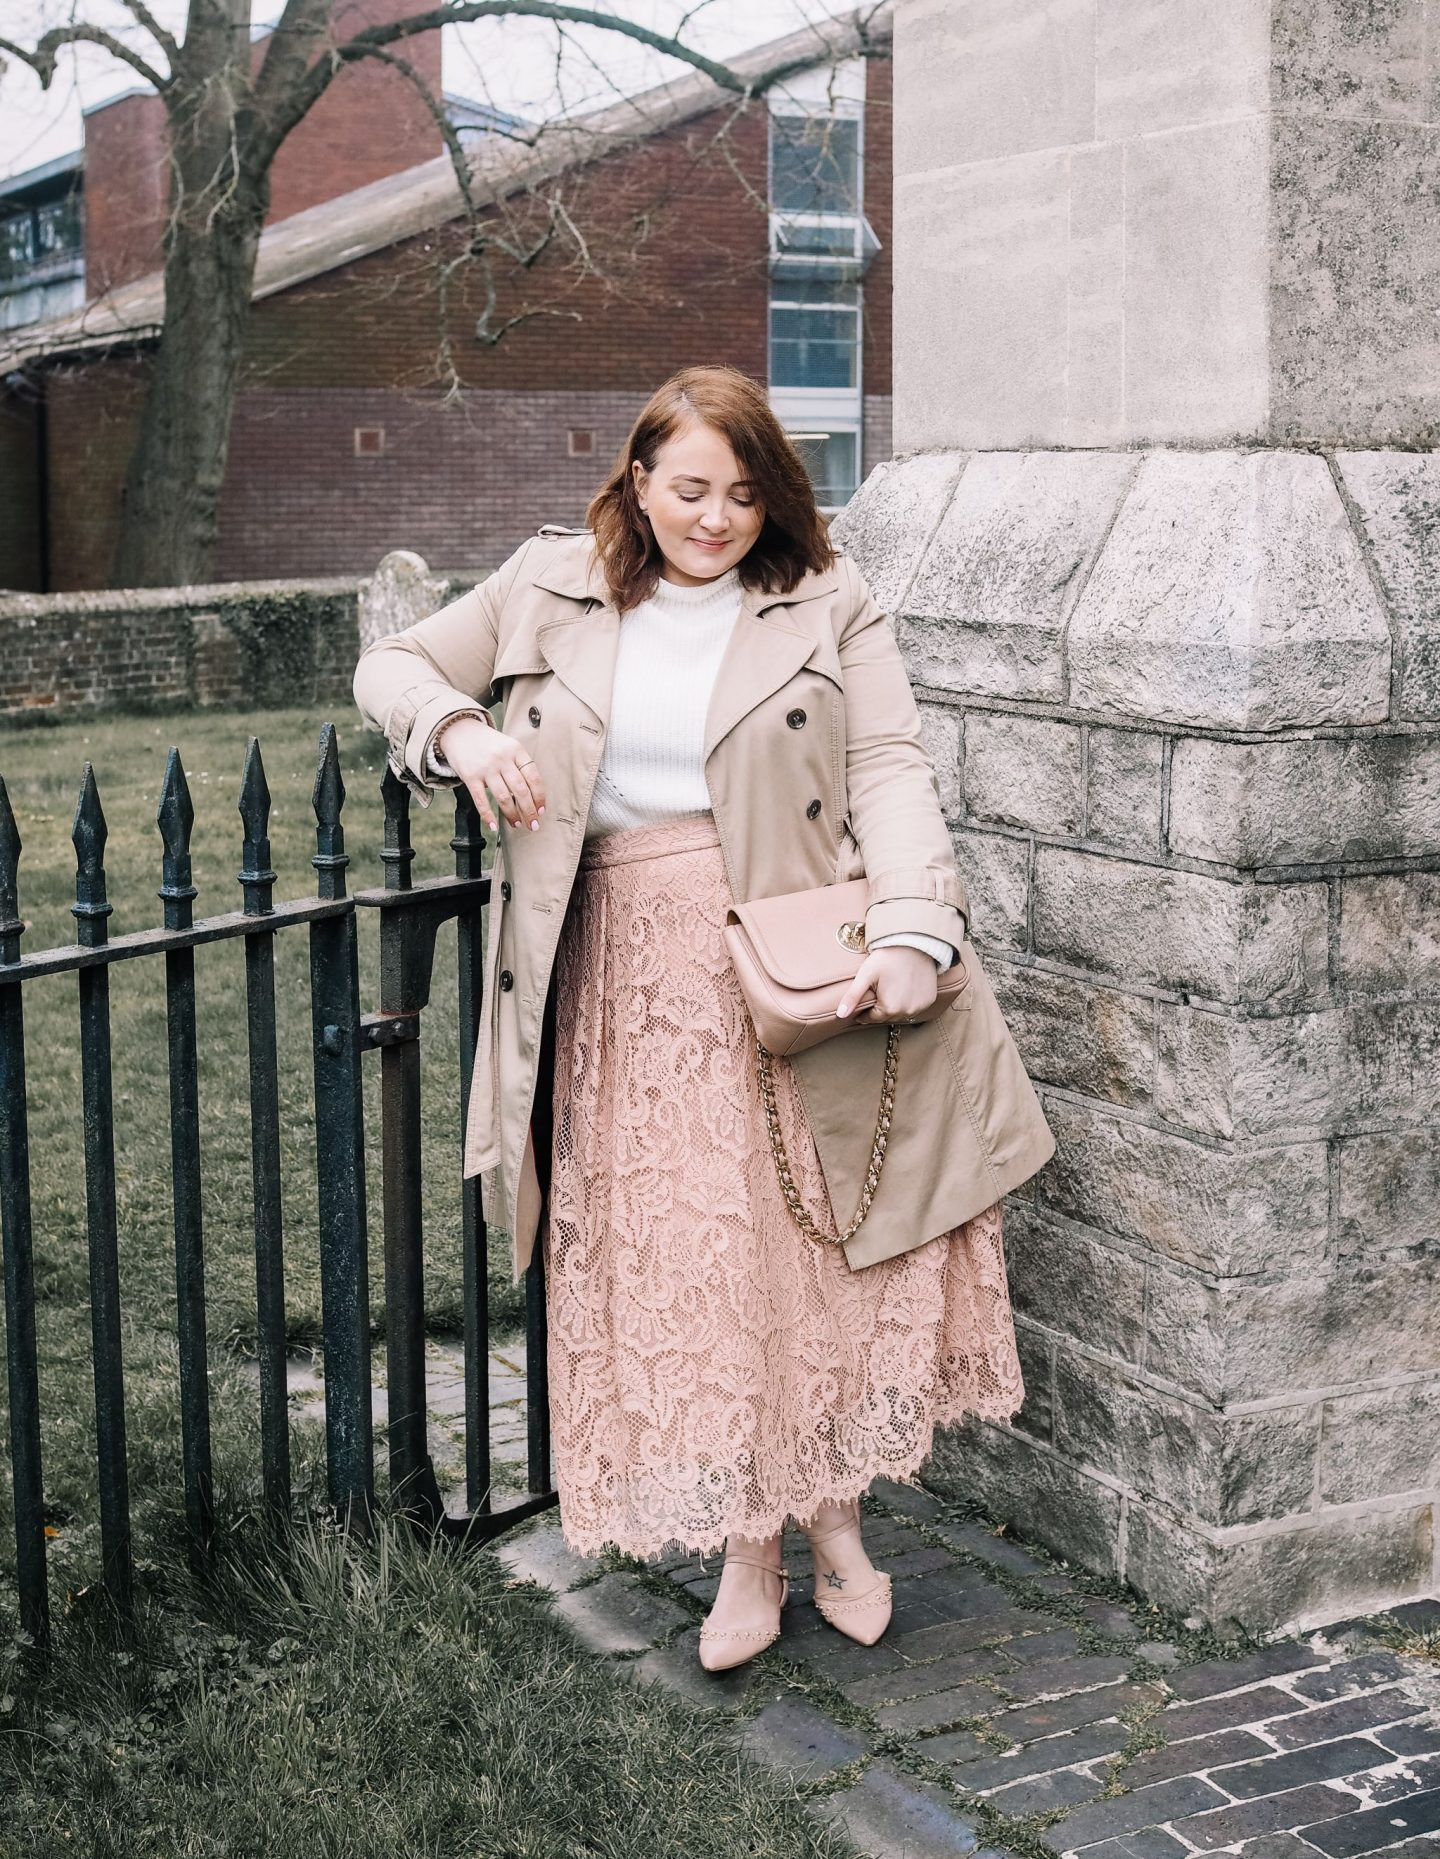 How To Effortlessly Wear Pink When You're Not That Girly